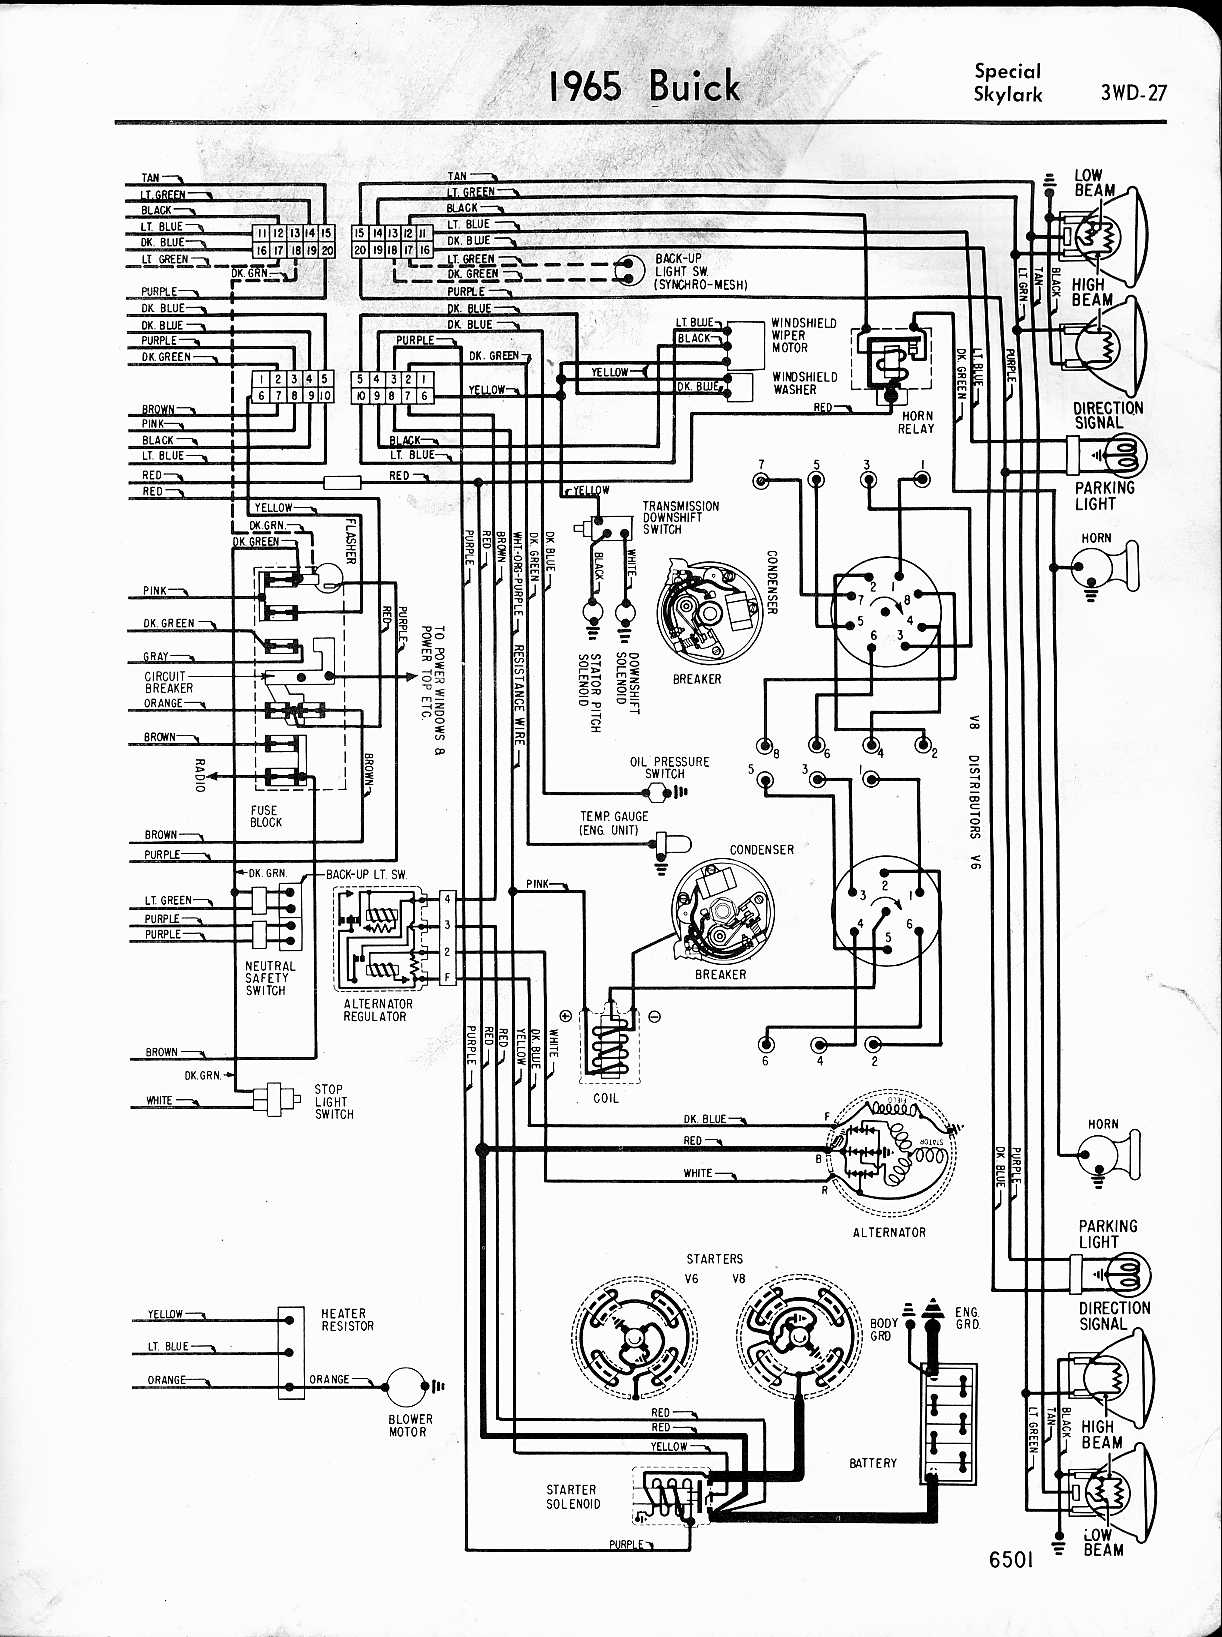 1965 Riviera Wiring Diagram Reinvent Your Yamaha Schematic Buick Diagrams 1957 Rh Oldcarmanualproject Com 1964 1969